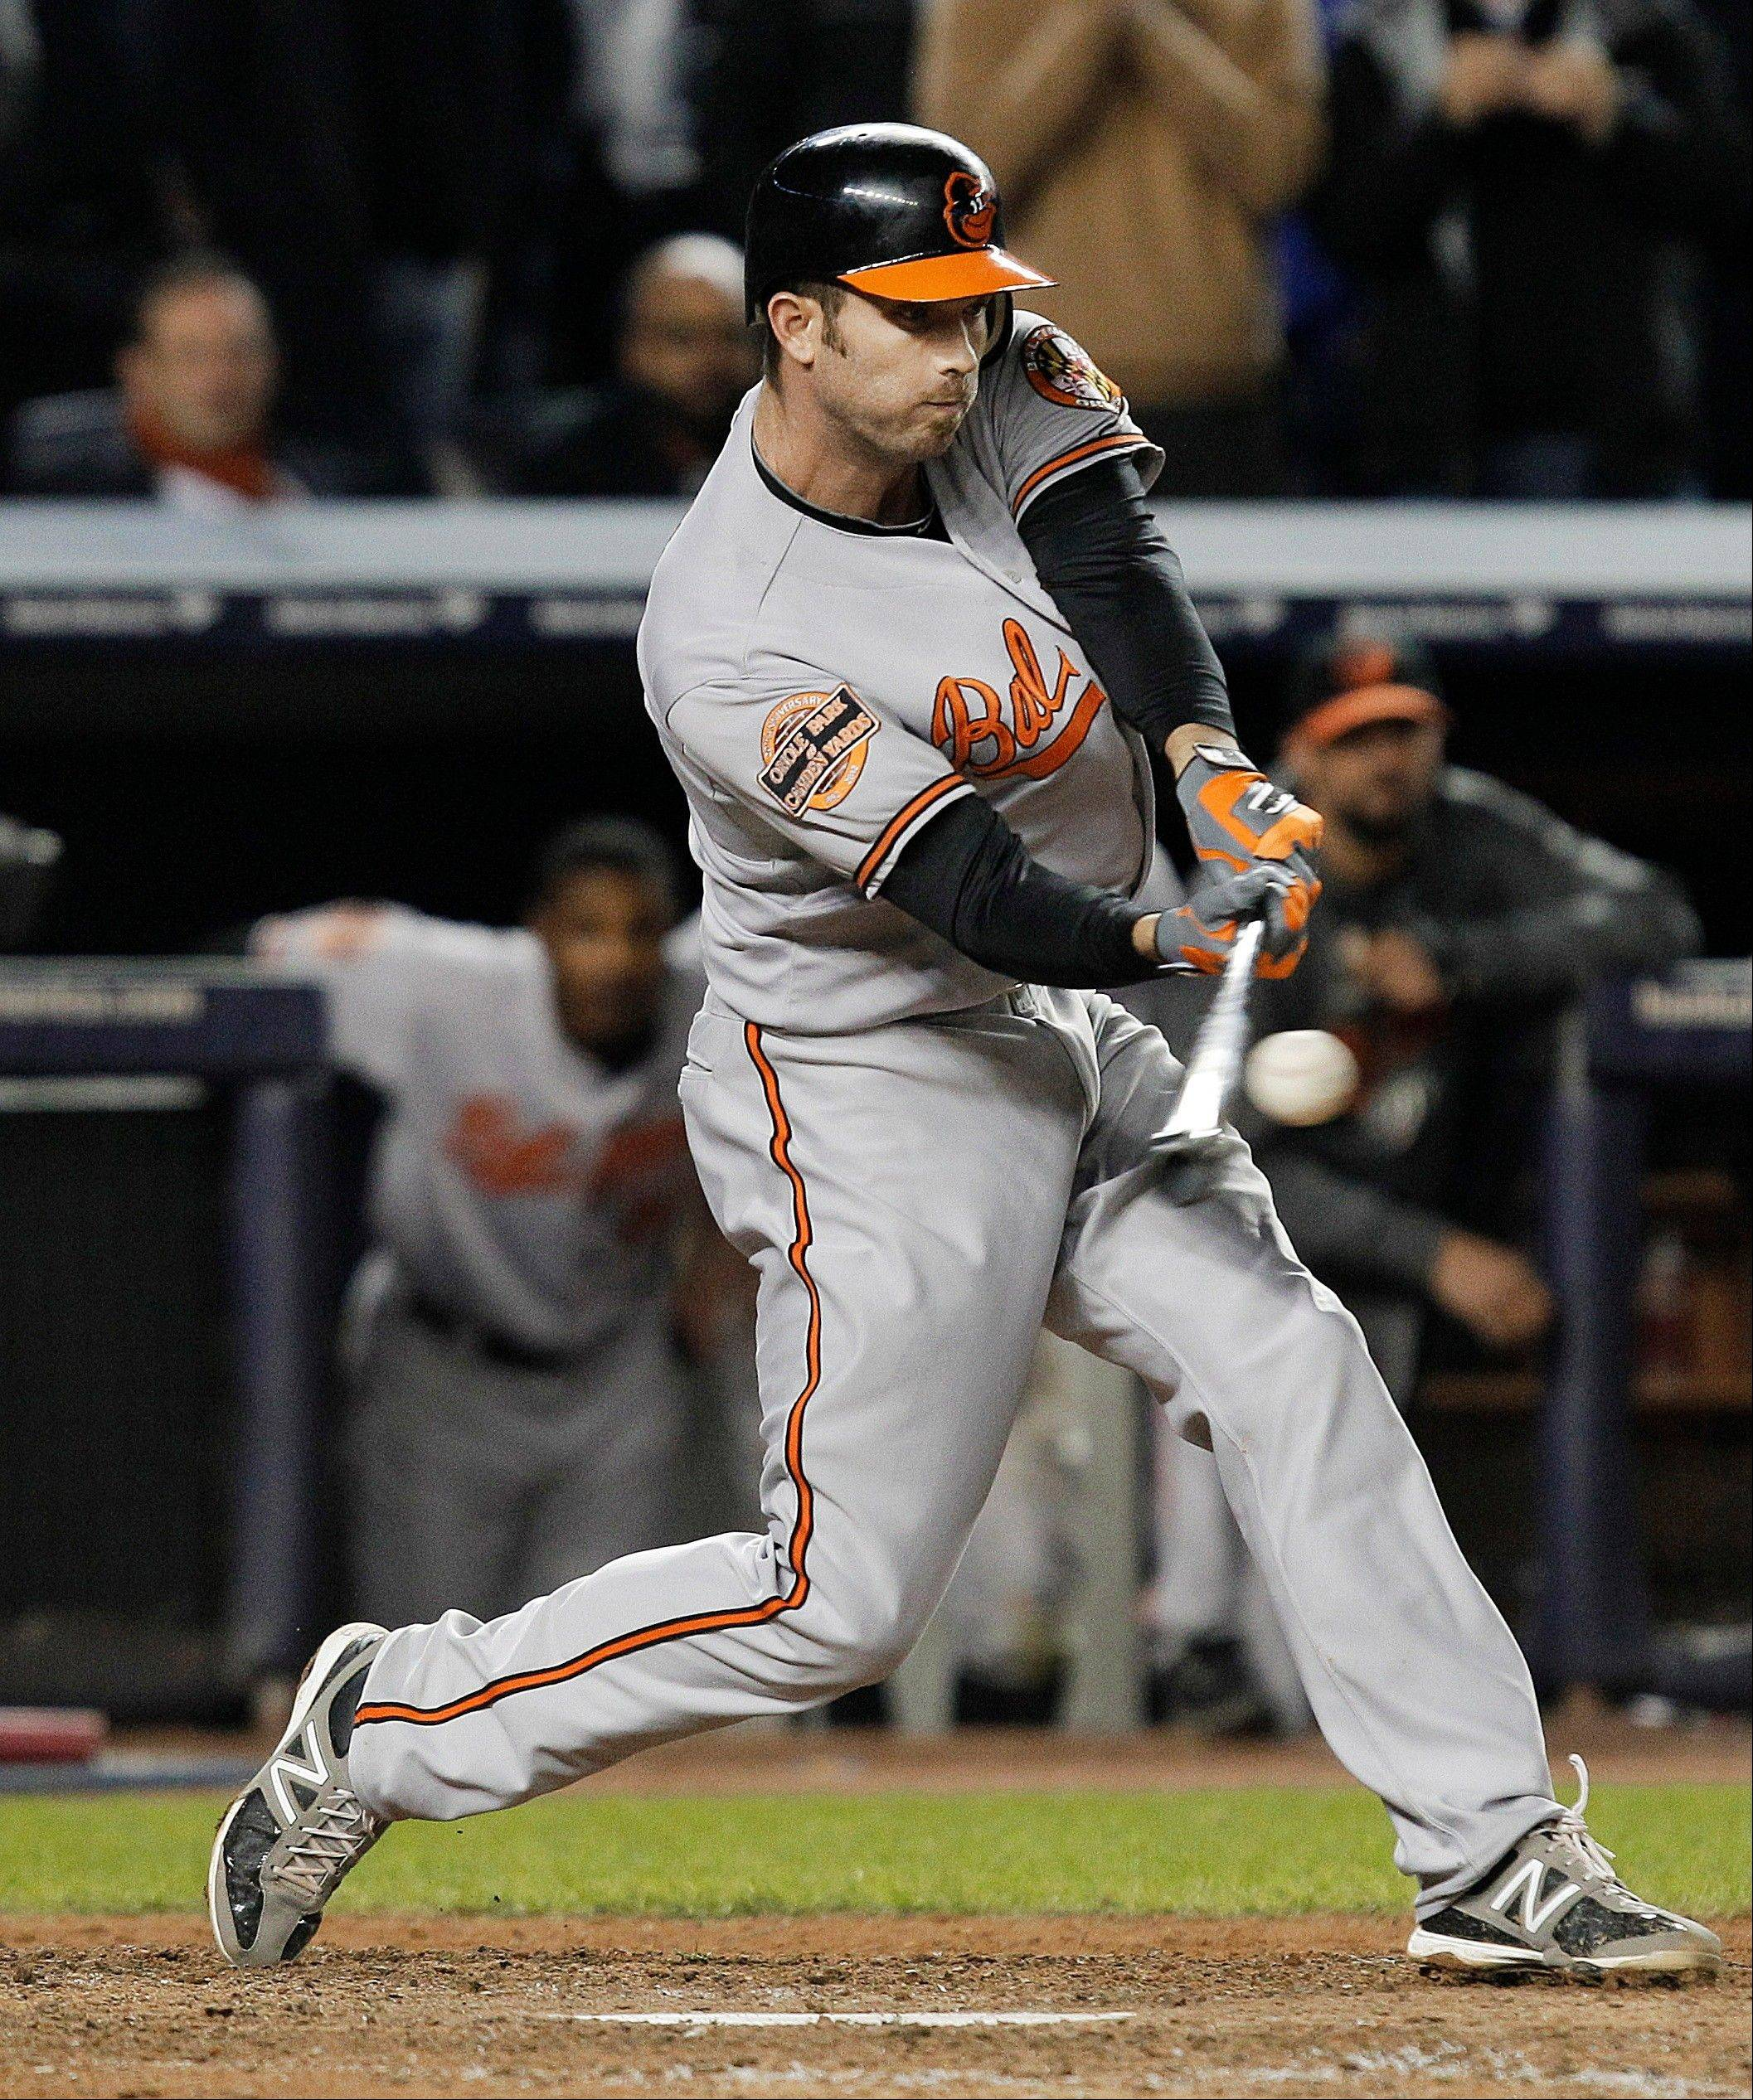 J.J. Hardy hit an RBI double in the 13th inning and Baltimore bounced back from a demoralizing loss to outlast the Yankees 2-1 Thursday night, forcing a deciding Game 5 in the AL division series.